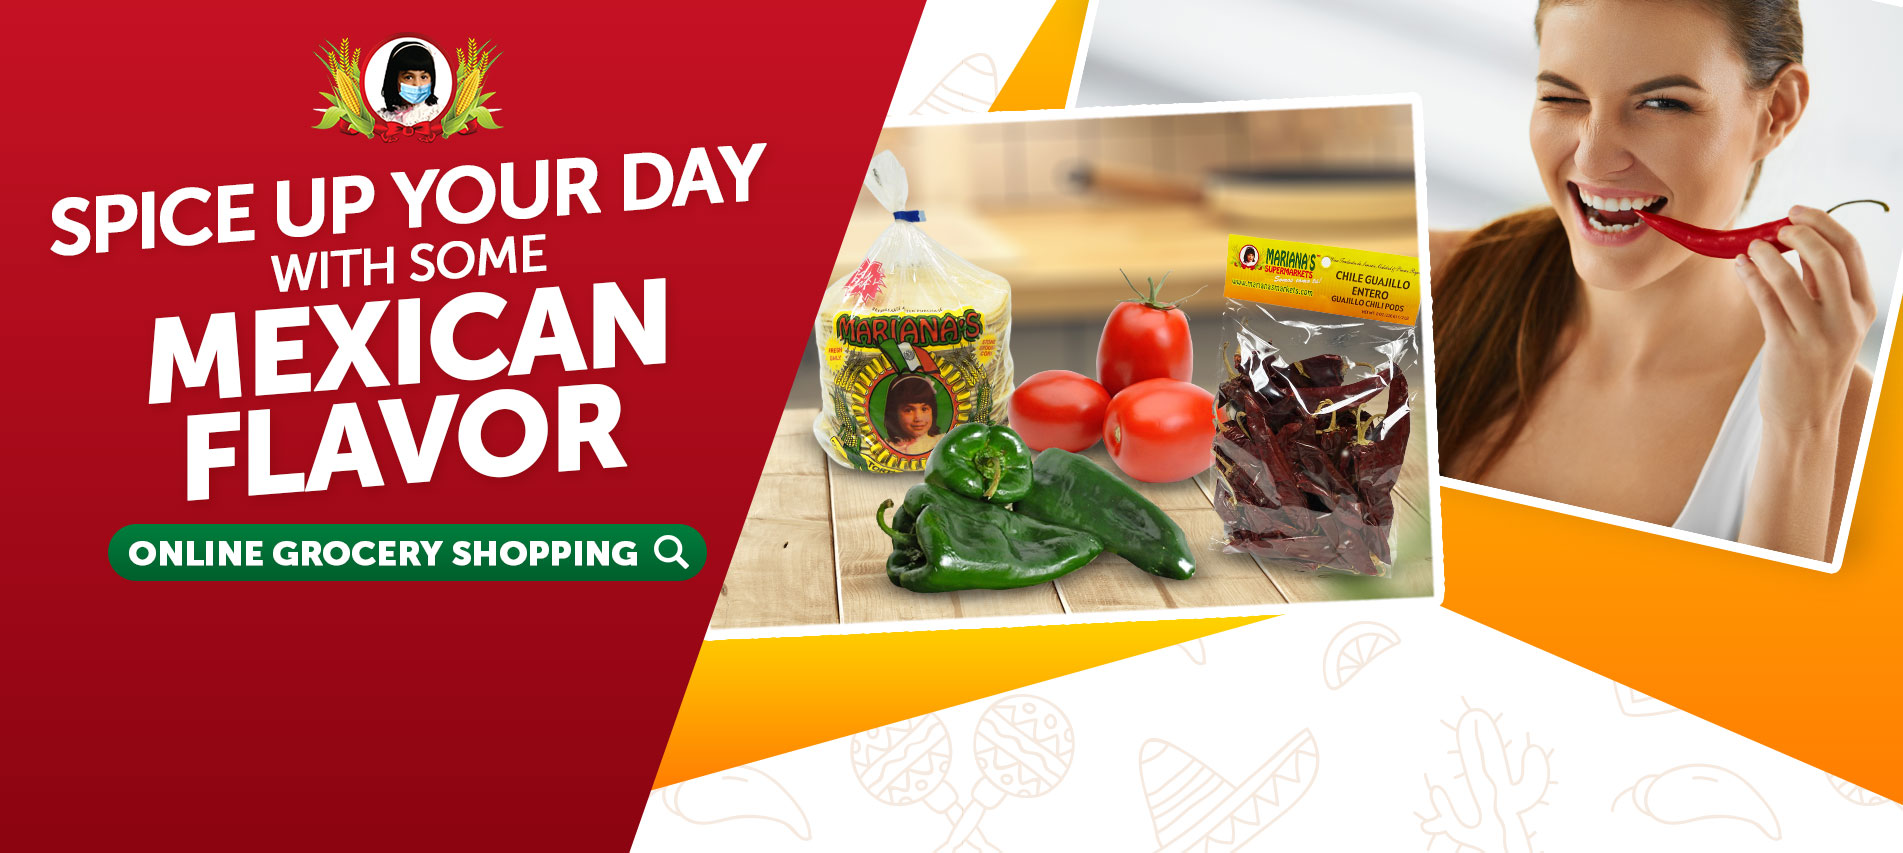 SPICE UP YOUR DAY WITH SOME MEXICAN PLAVOR ONLINE GROCERY SHOPPING